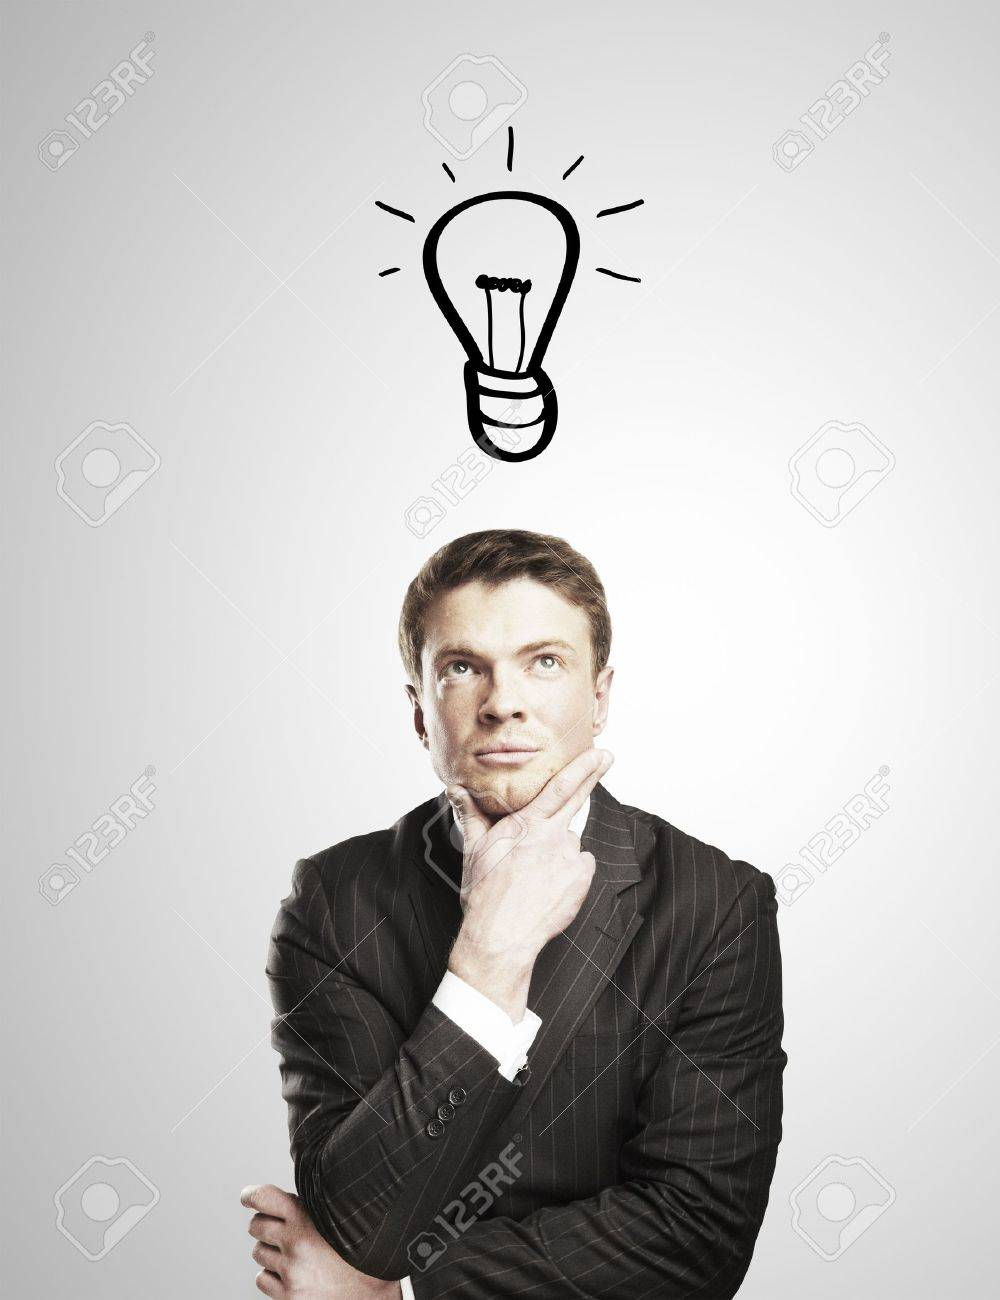 pensive man with a drawing lamps over his head Stock Photo - 14625971